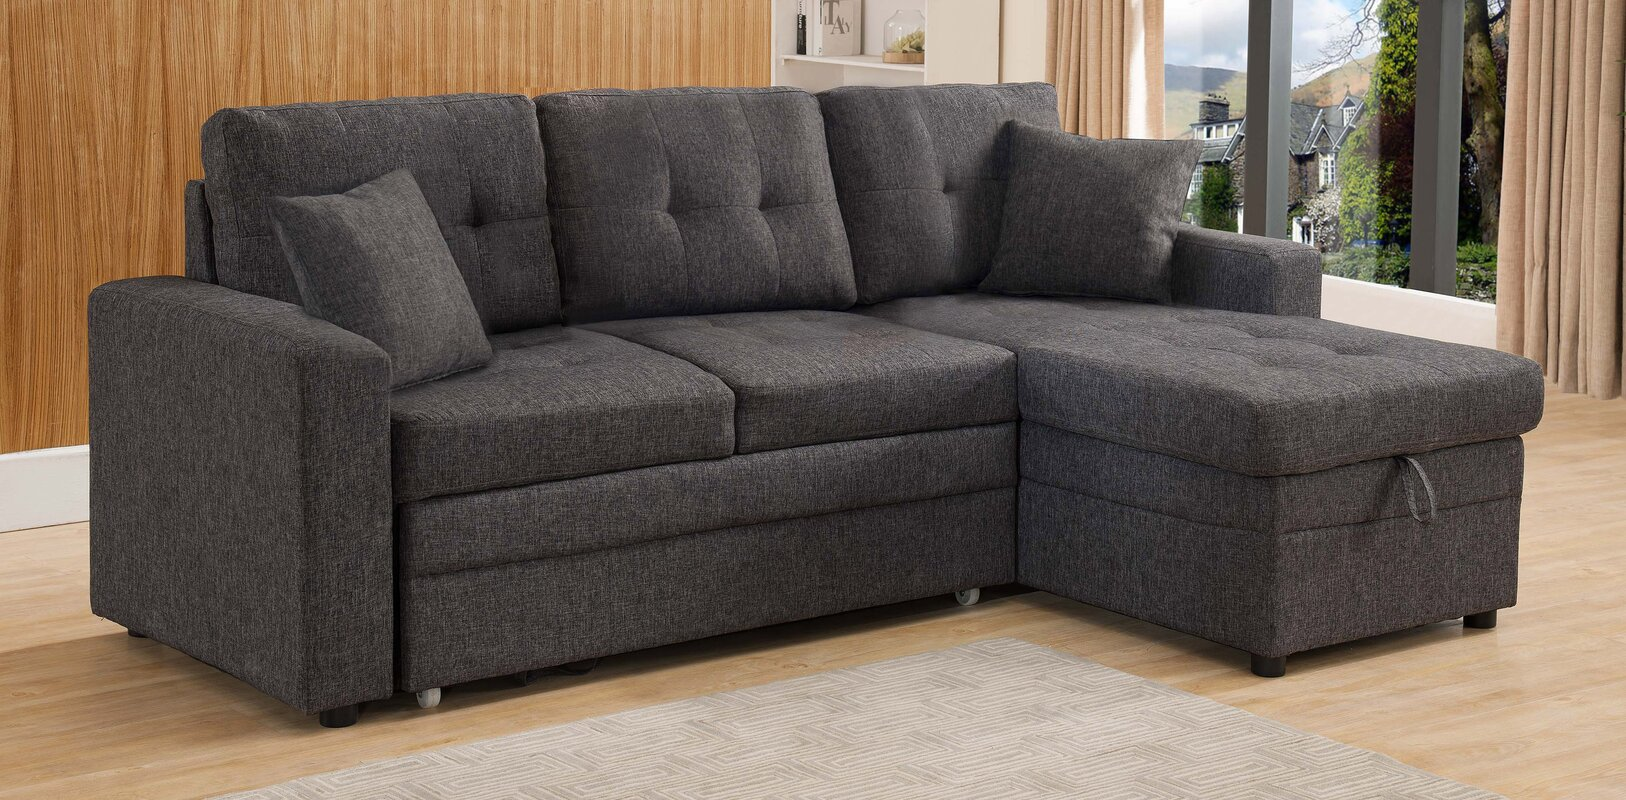 Latitude Run Reider Sleeper Sectional Amp Reviews Wayfair